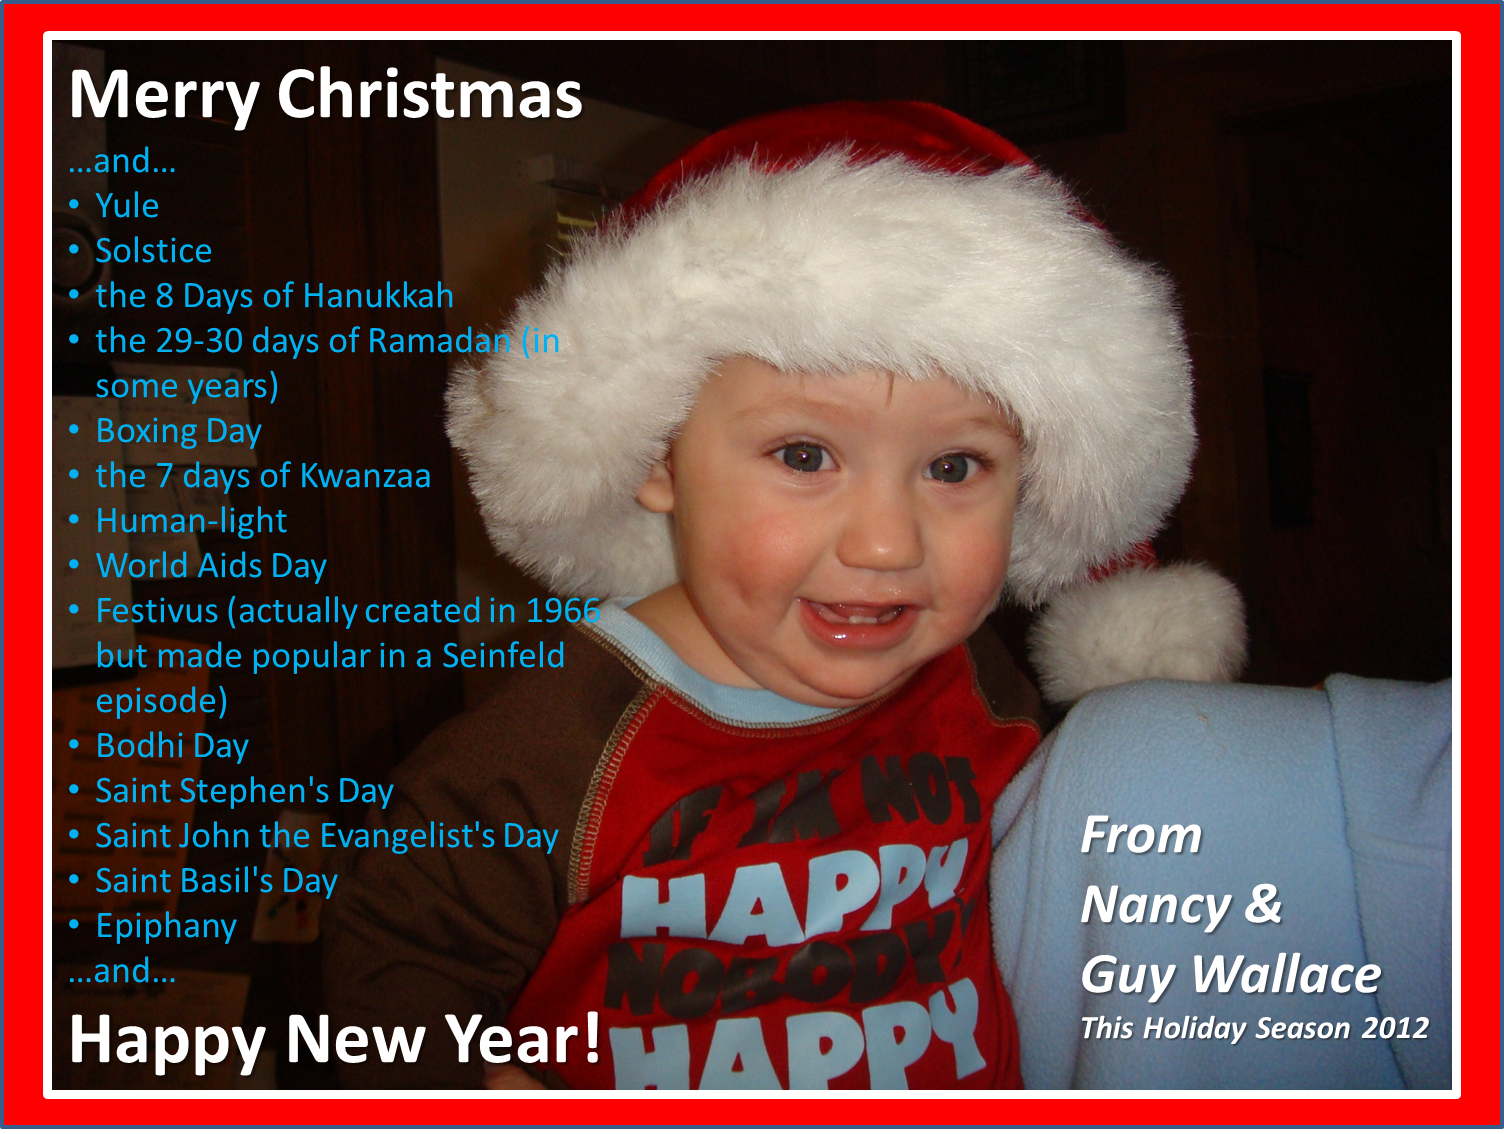 Merry Christmas Card 2012 | EPPIC - Pursuing Performance